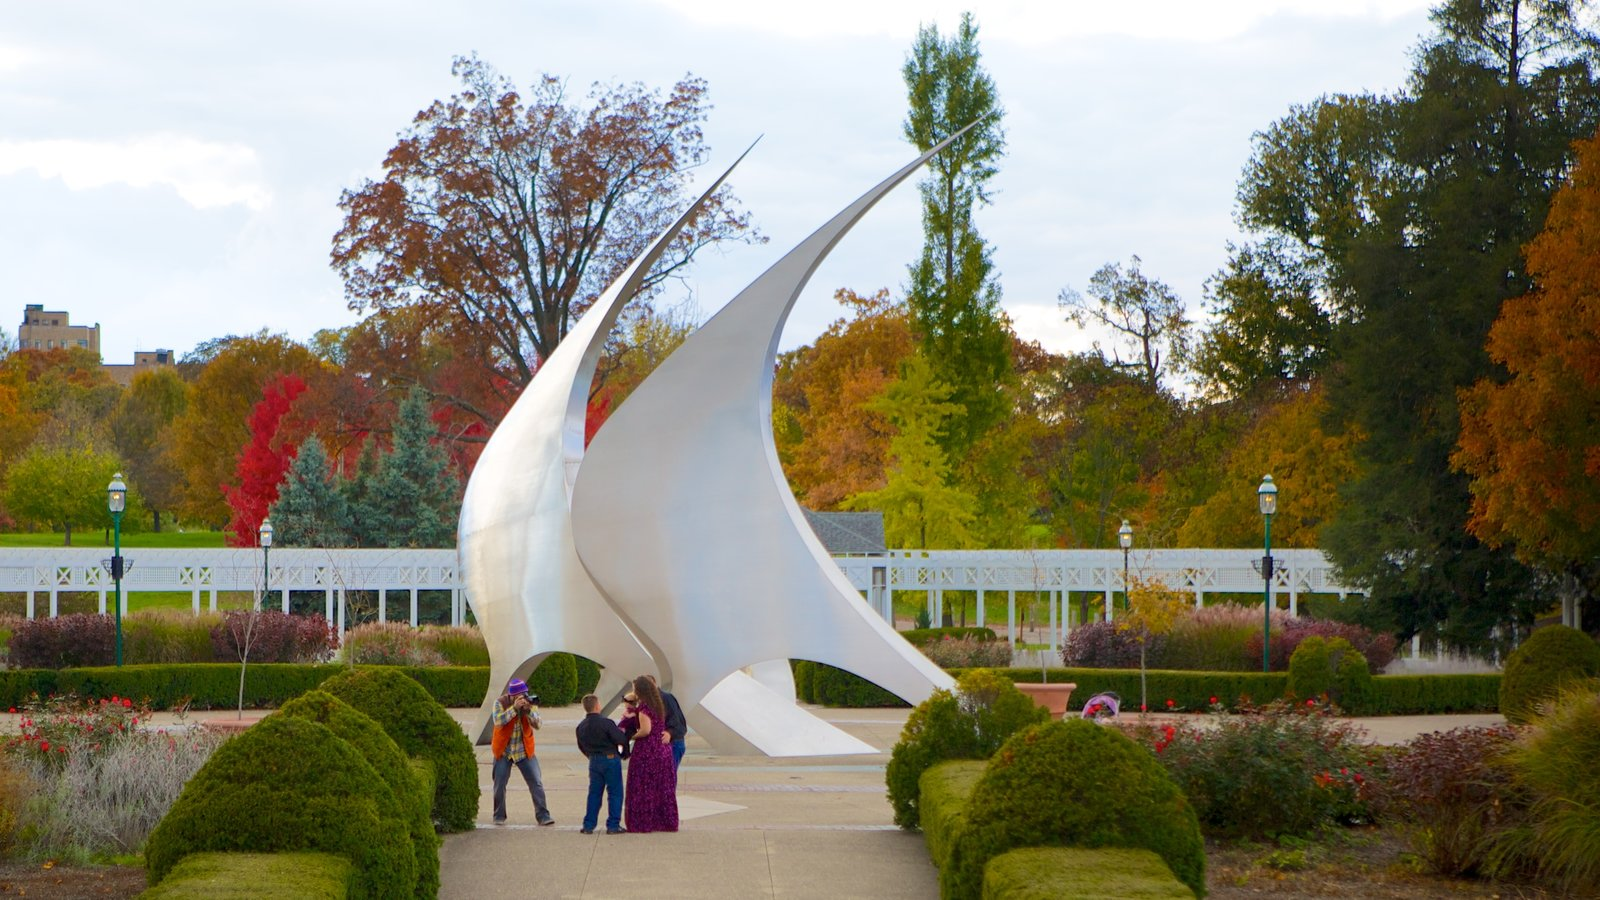 Franklin Park Conservatory And Botanical Gardens Featuring A Park And  Outdoor Art As Well As A